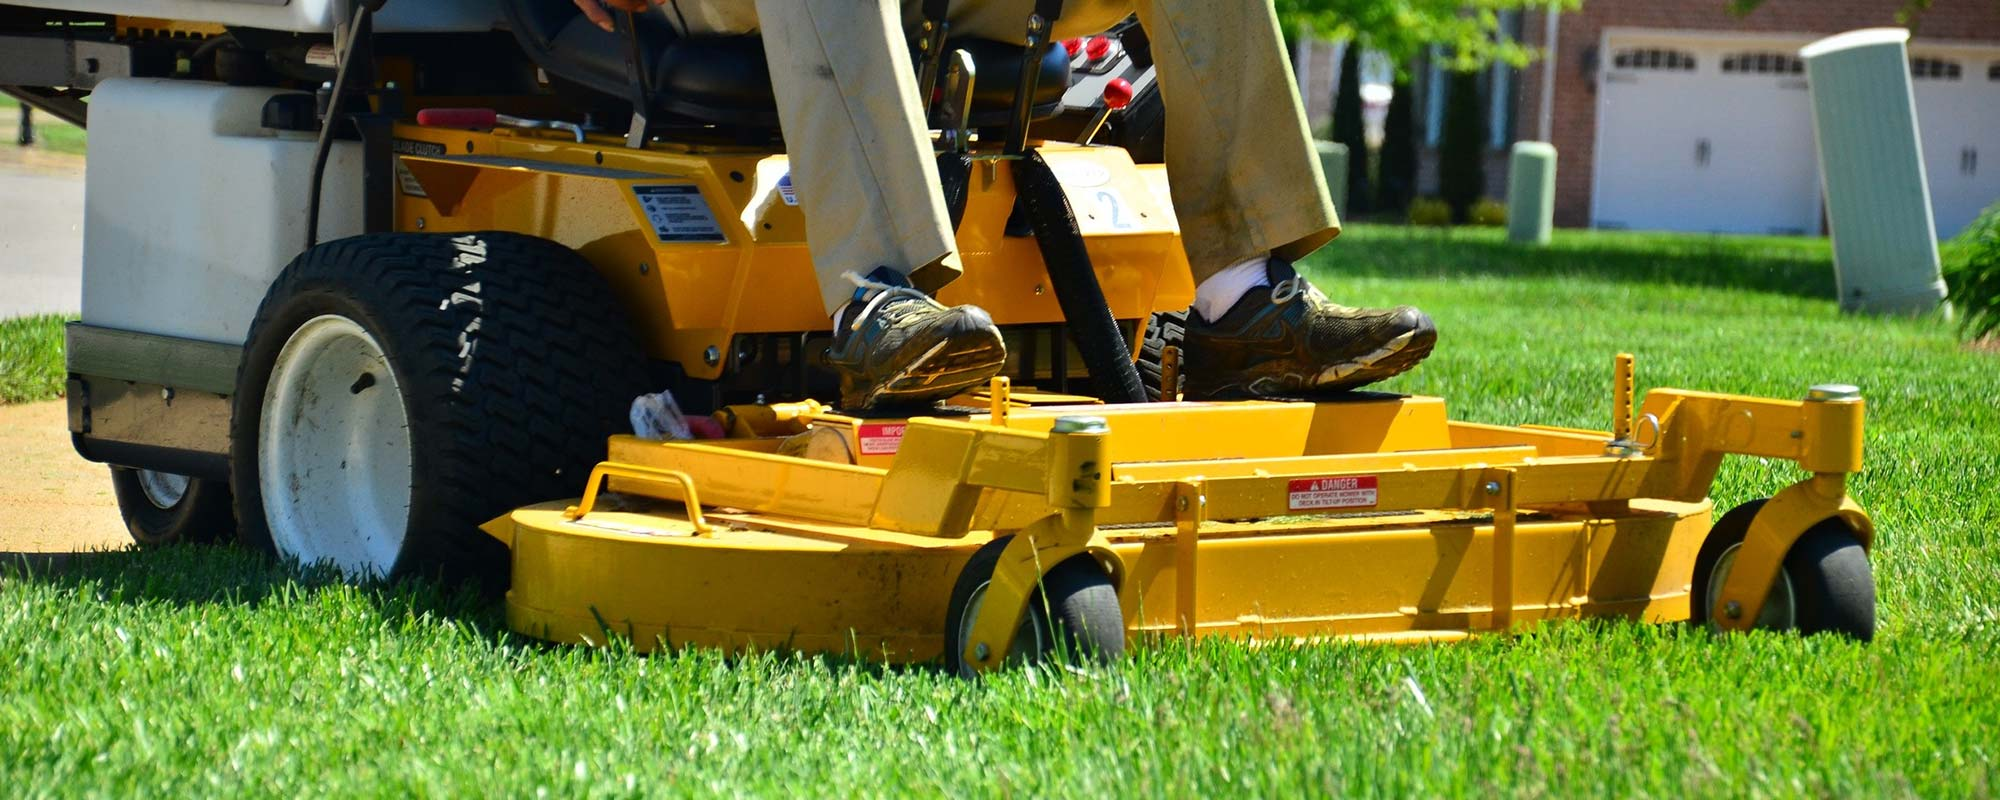 VIP Lawn Mowing Franchise